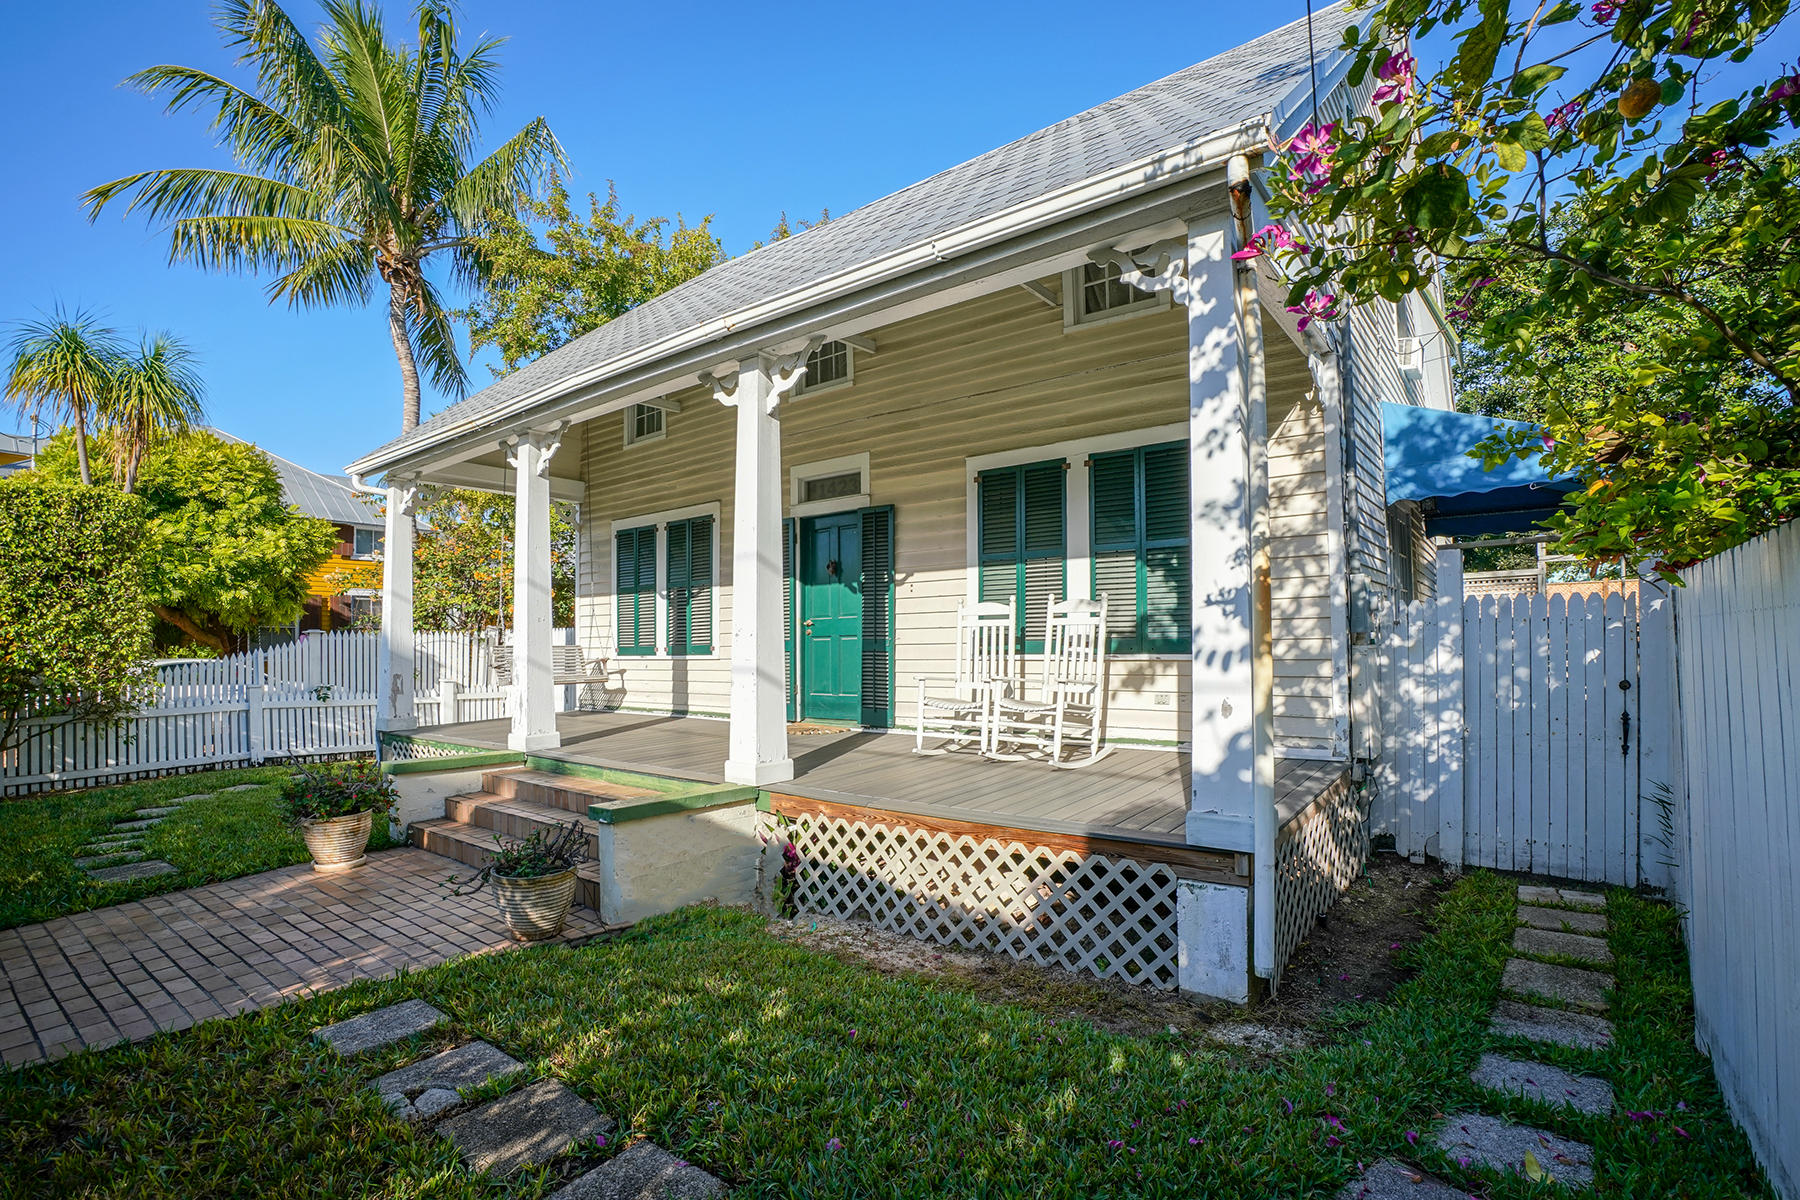 Single Family Homes for Sale at 1423,1418 Petronia., Newton Street, Key West, FL 1423,1418 Petronia., Newton Street Key West, Florida 33040 United States